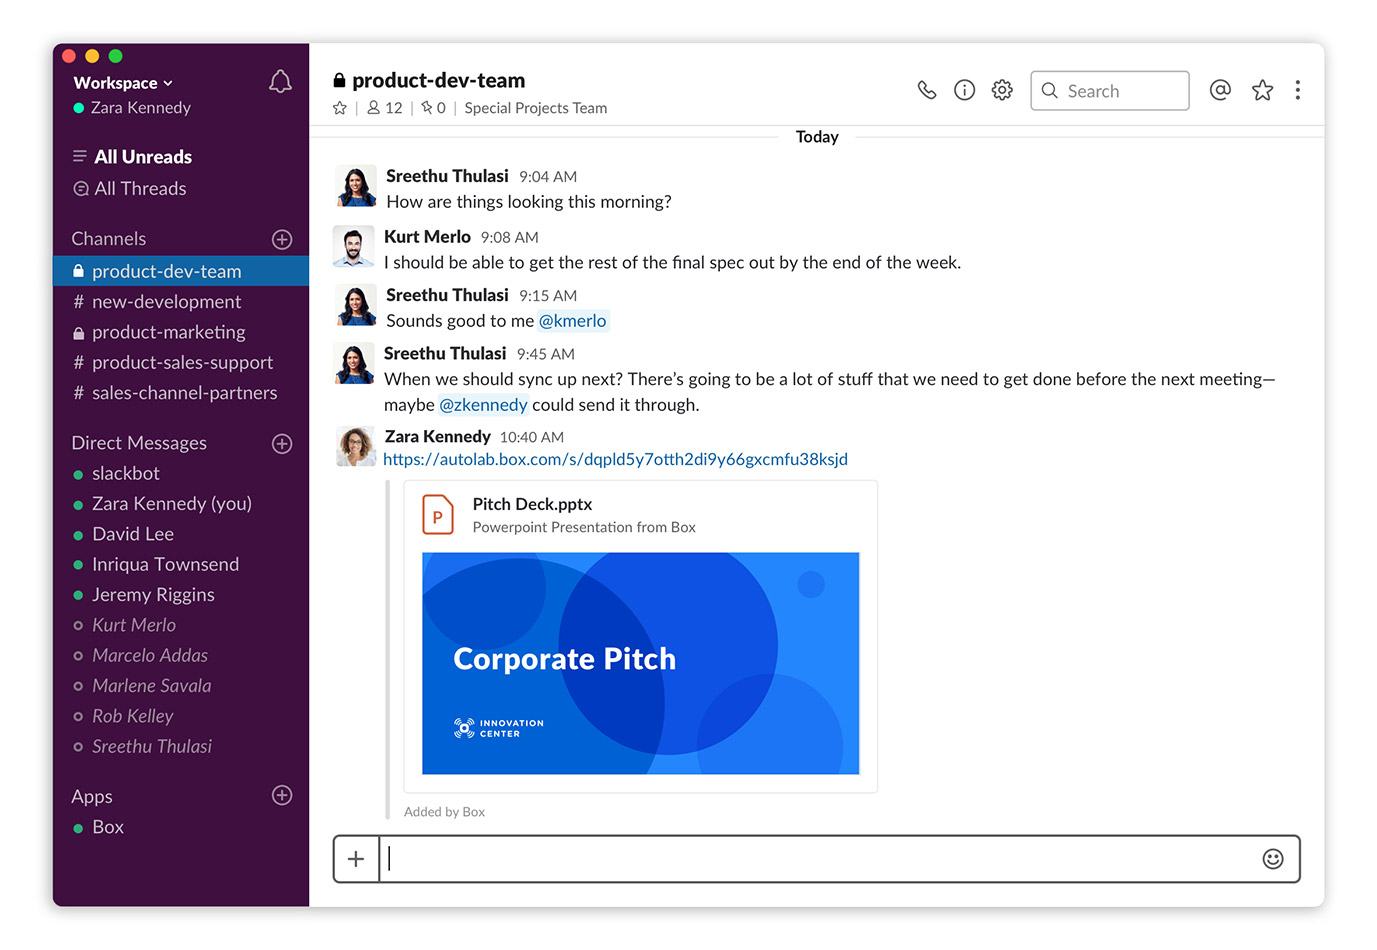 A screenshot showing how the new Box app for Slack works.